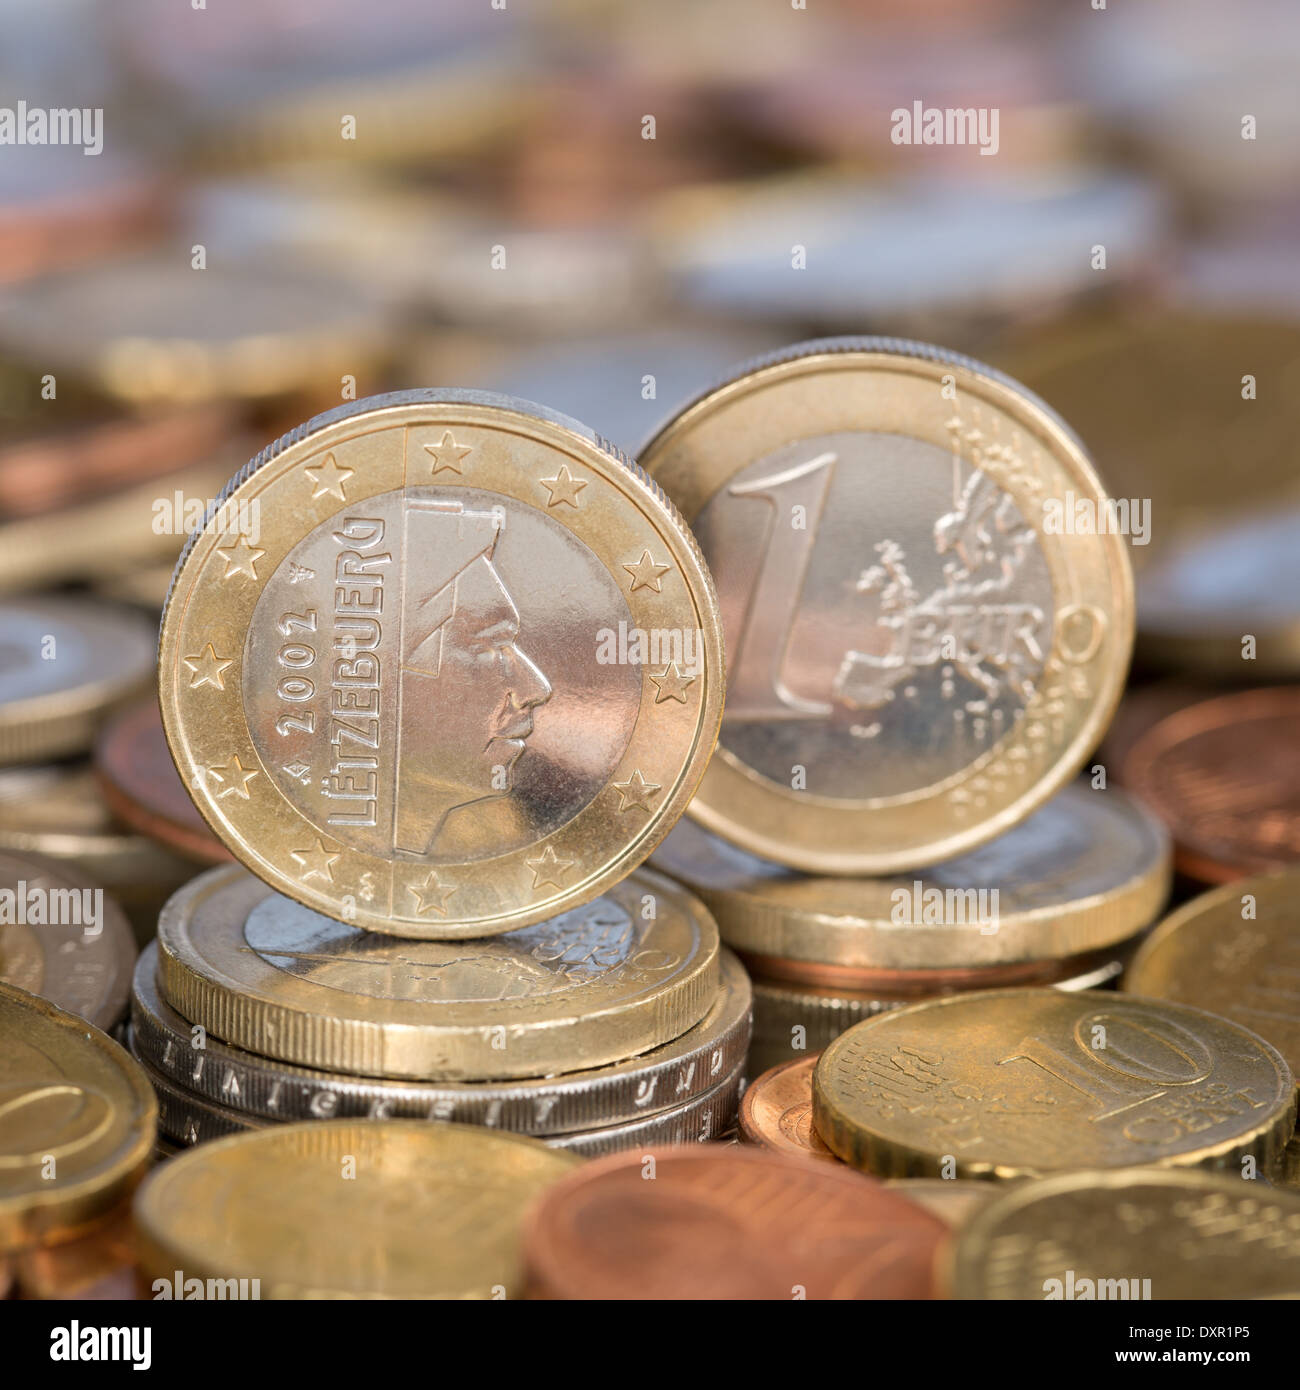 A one Euro coin from the European Union currency member country Luxemburg - Stock Image